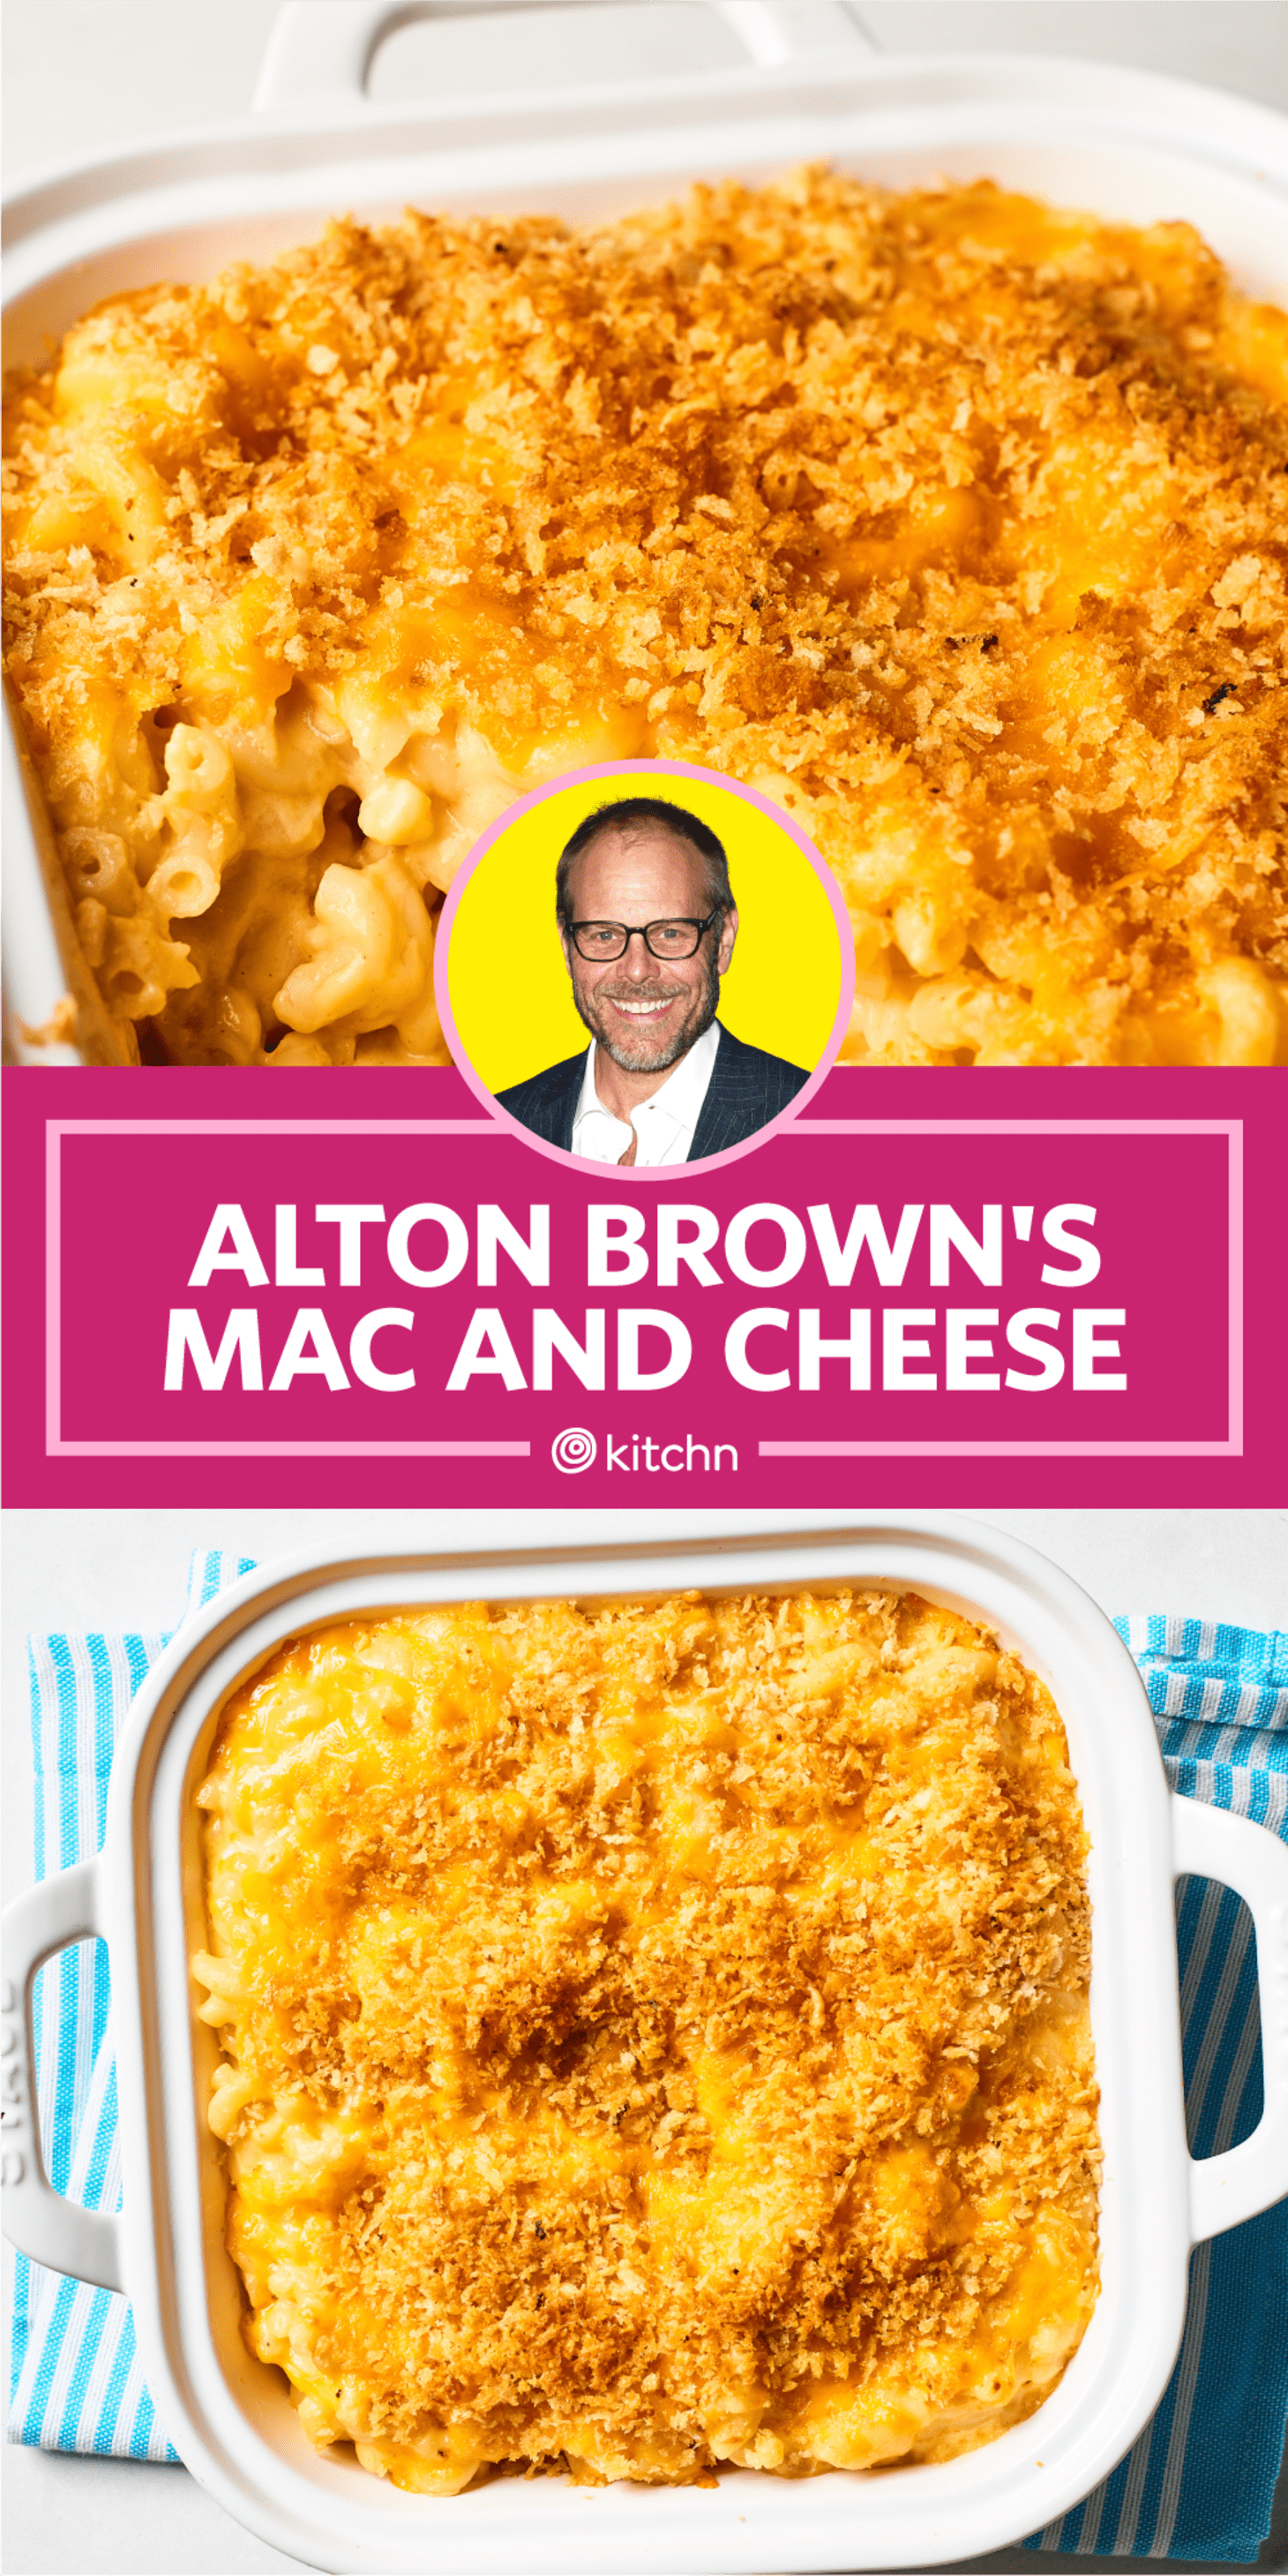 What Is the Best Cheese to Use for Mac and Cheese?